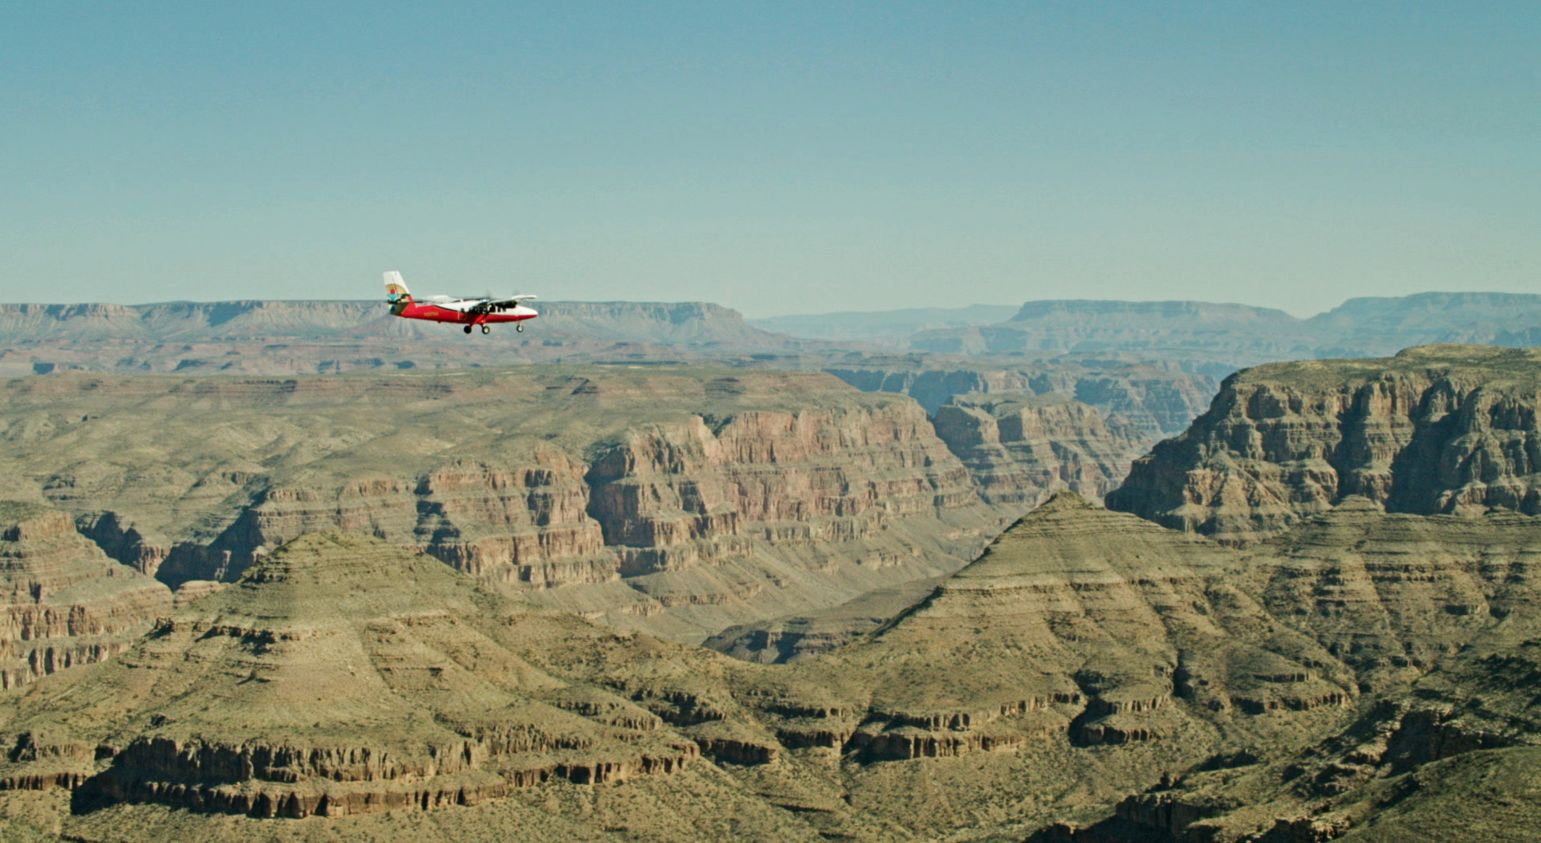 A small red and white airplane soars over a stone gorge of the Grand Canyon National Park.